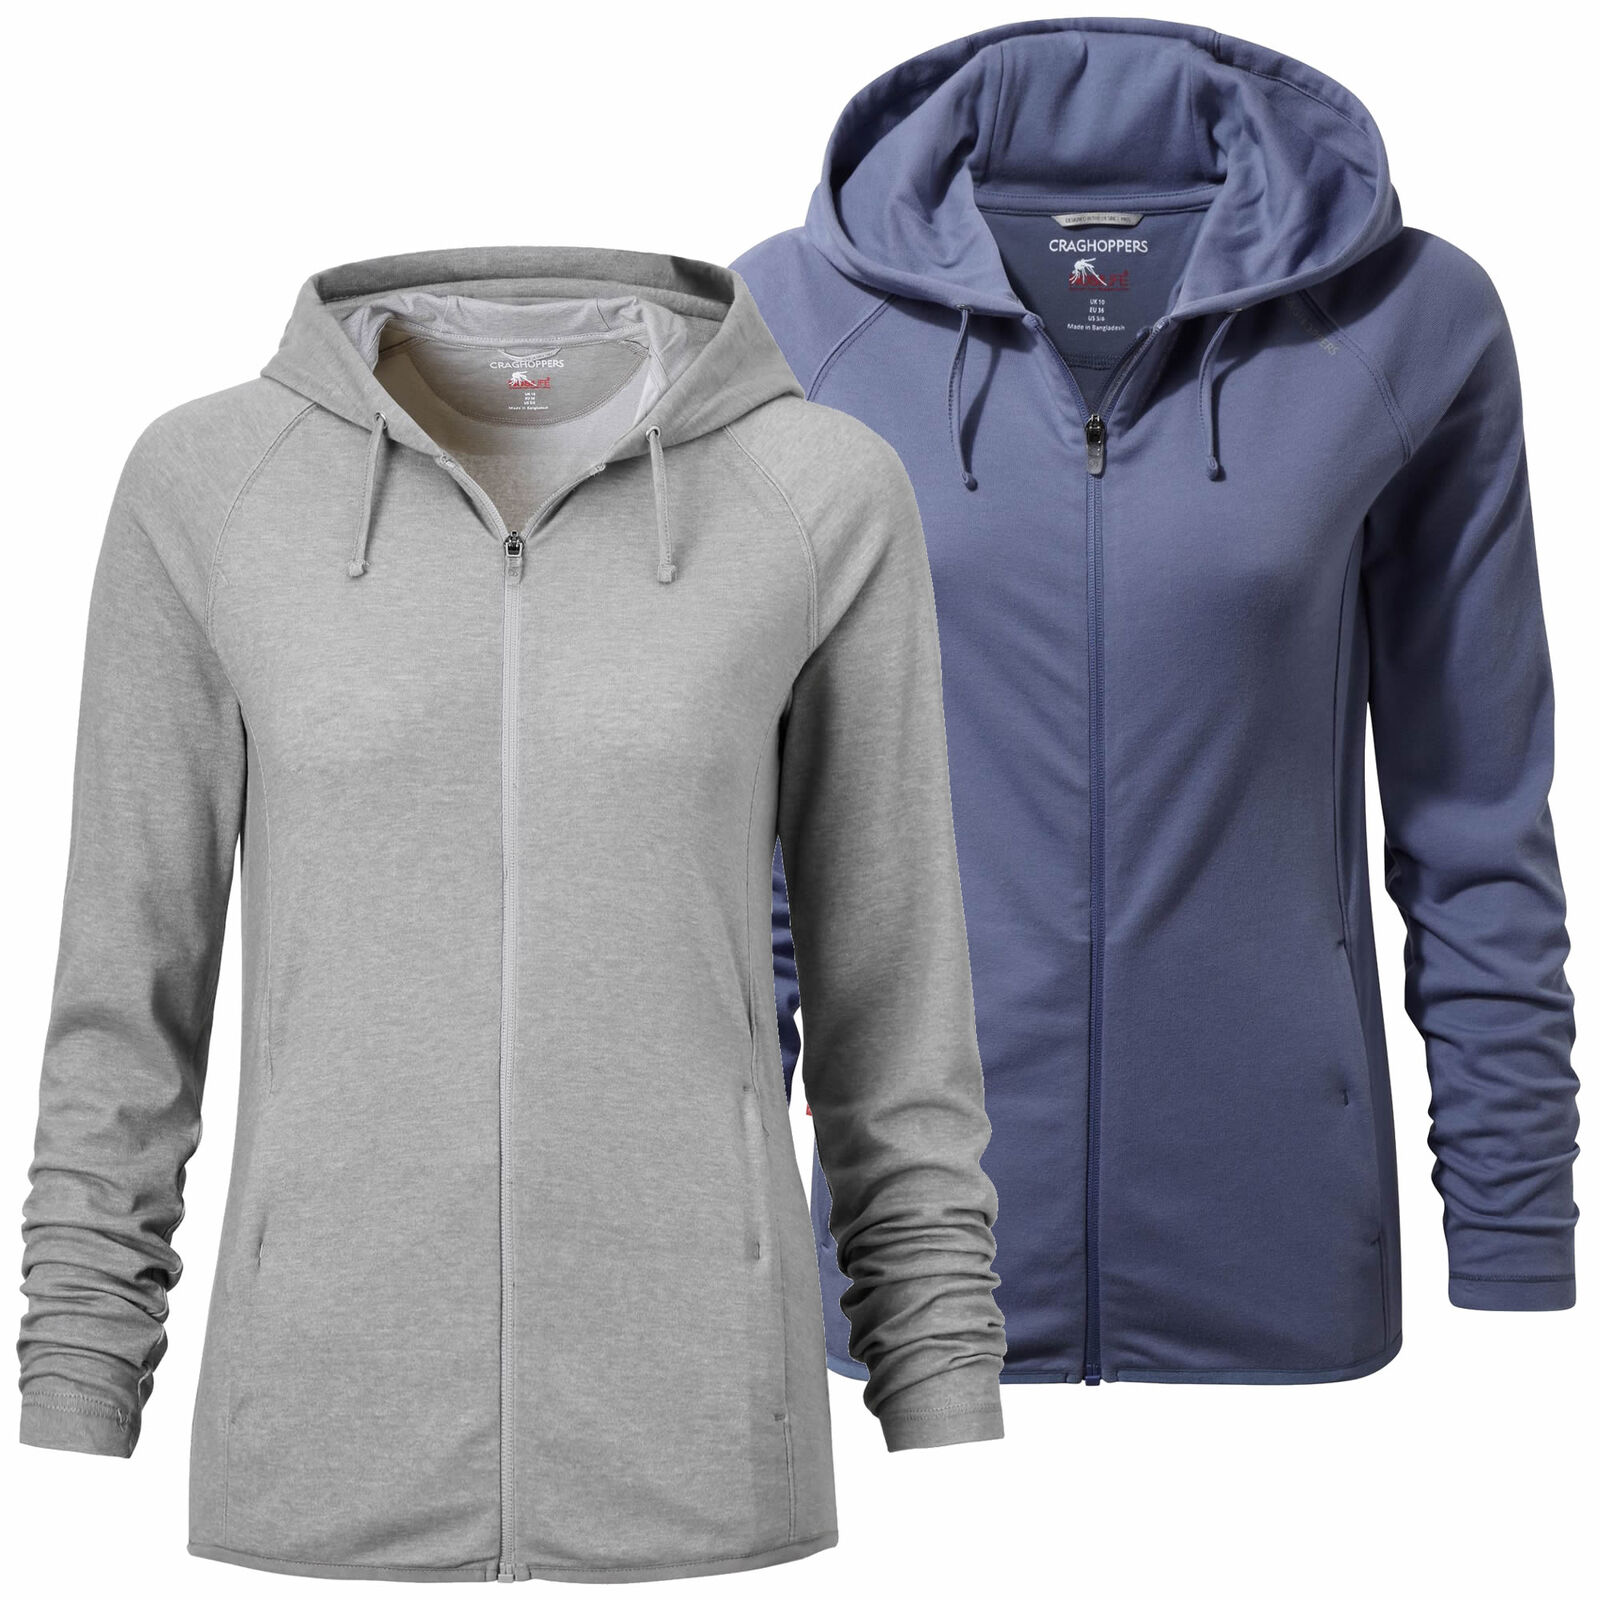 Craghoppers NosiLife Insect Repellent Sydney Womens Full Zip Hooded Top